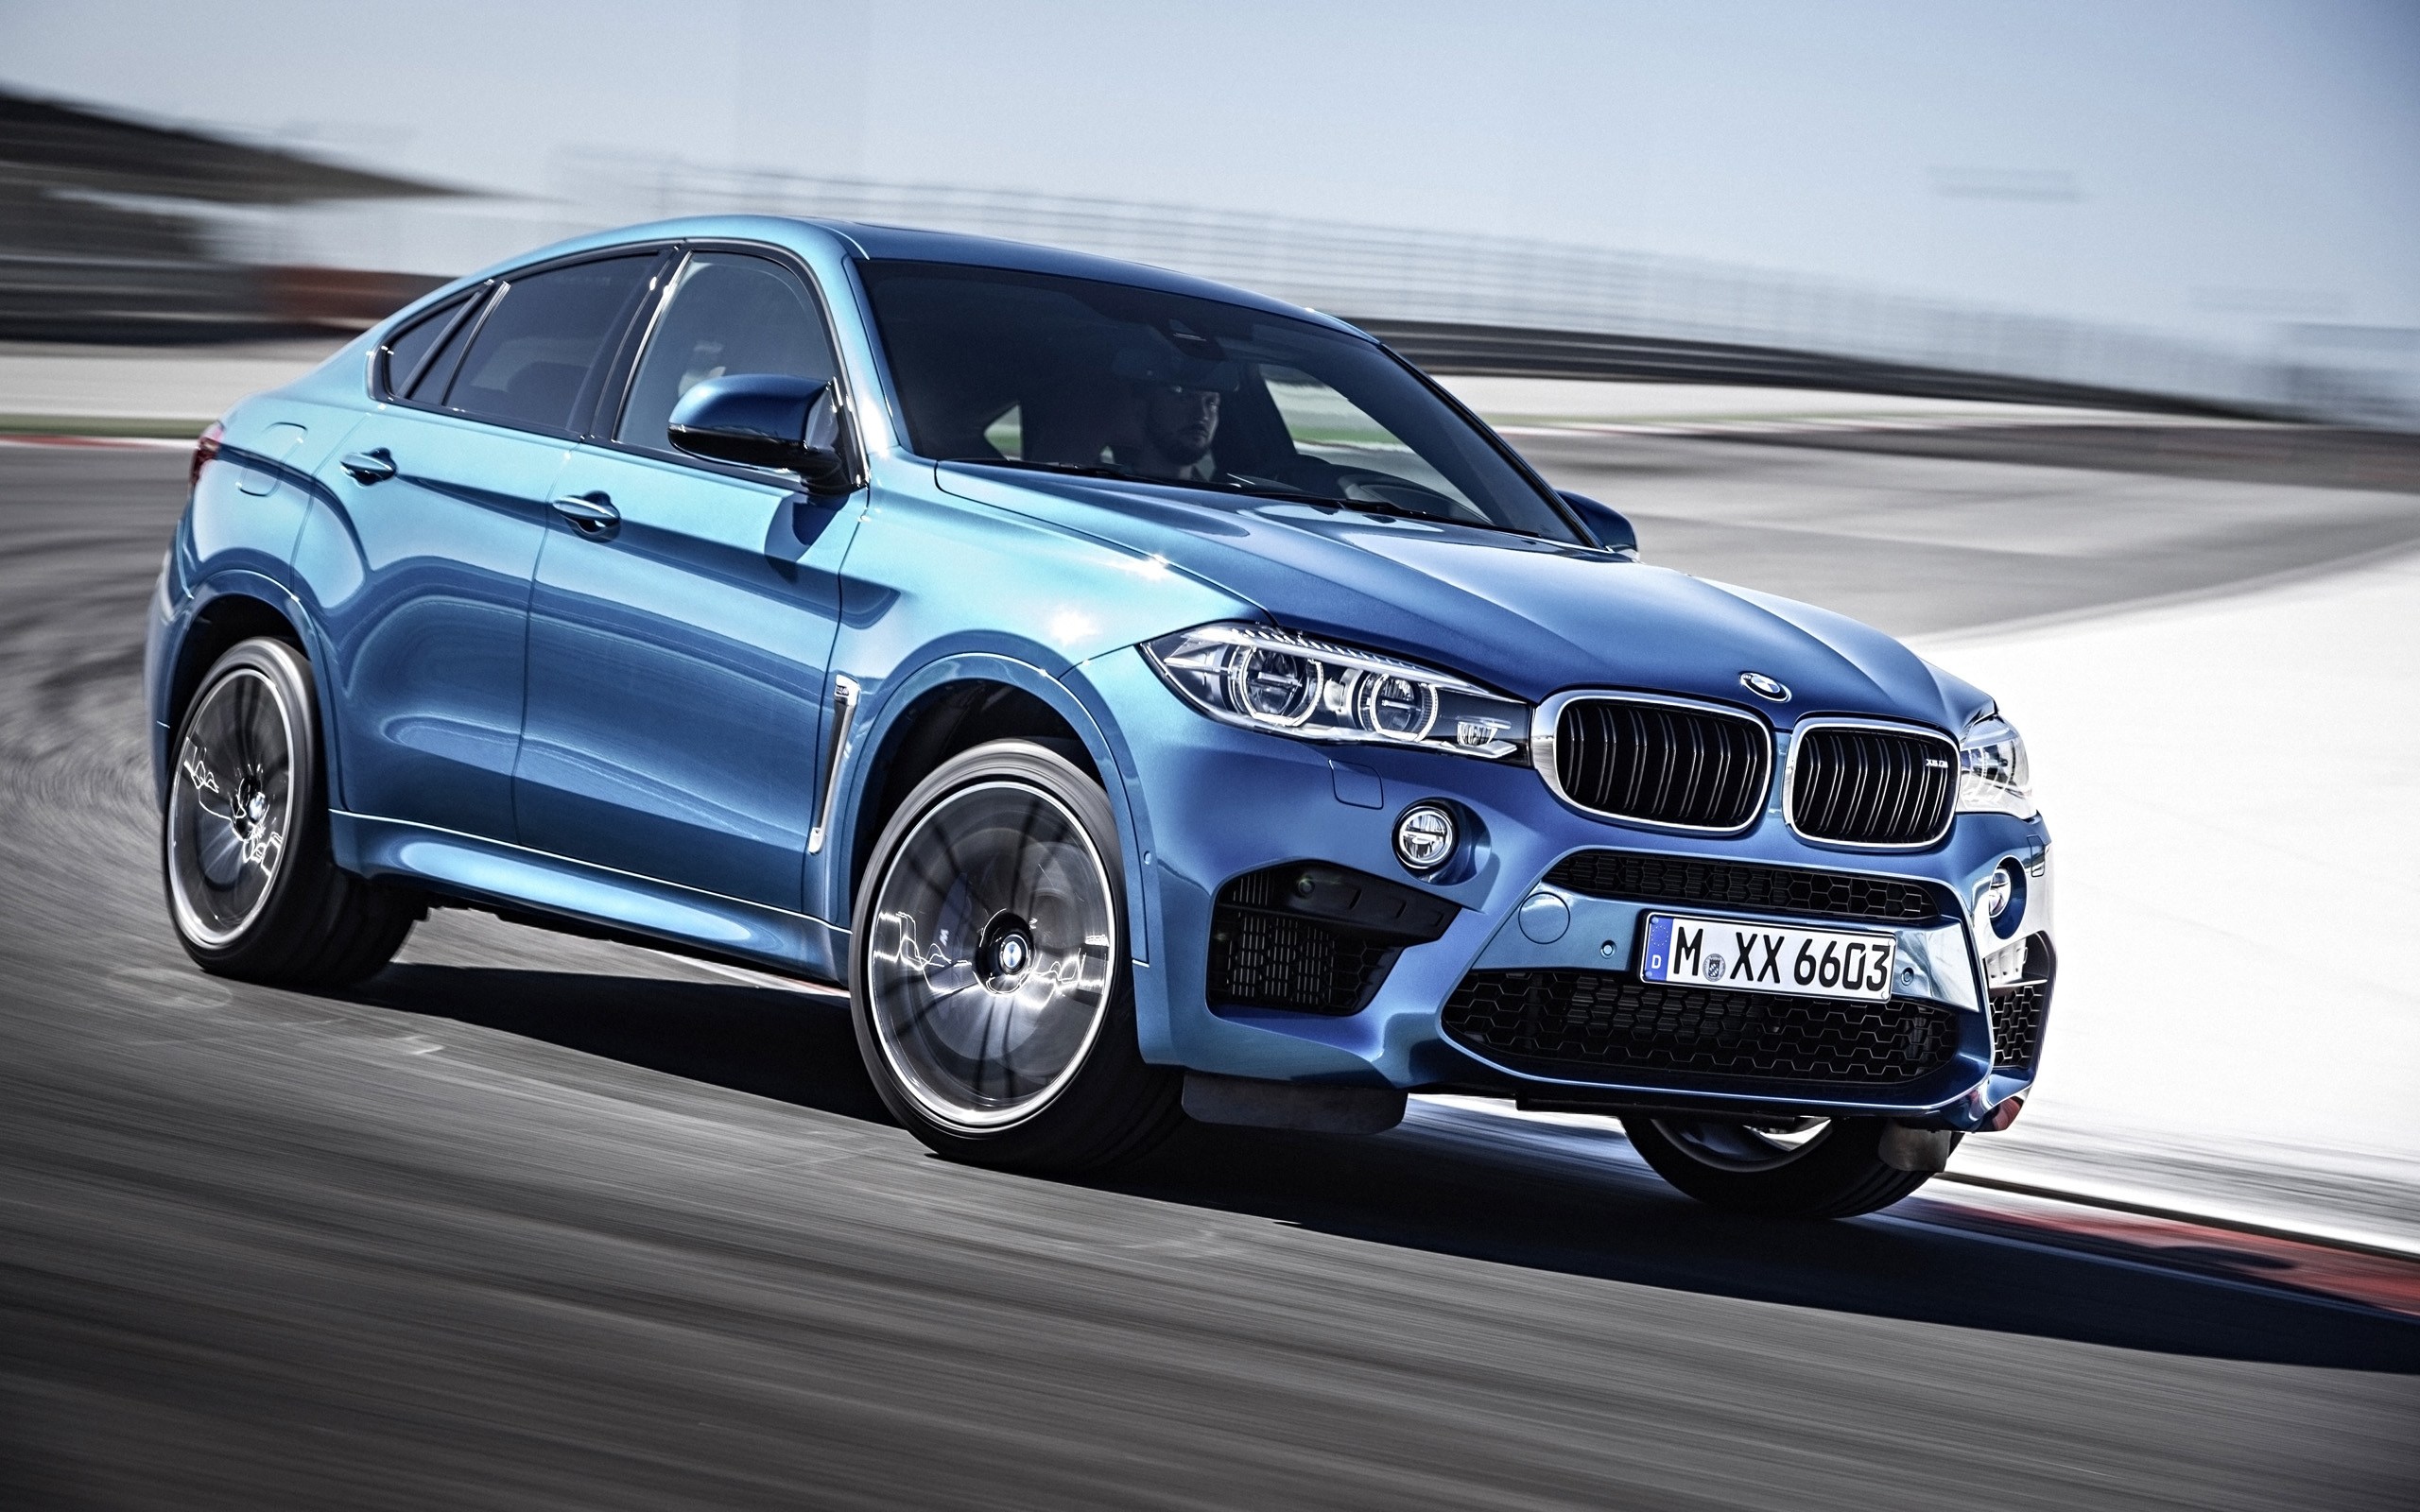 2015 Bmw X6 M Wallpaper Hd Car Wallpapers Id 4930